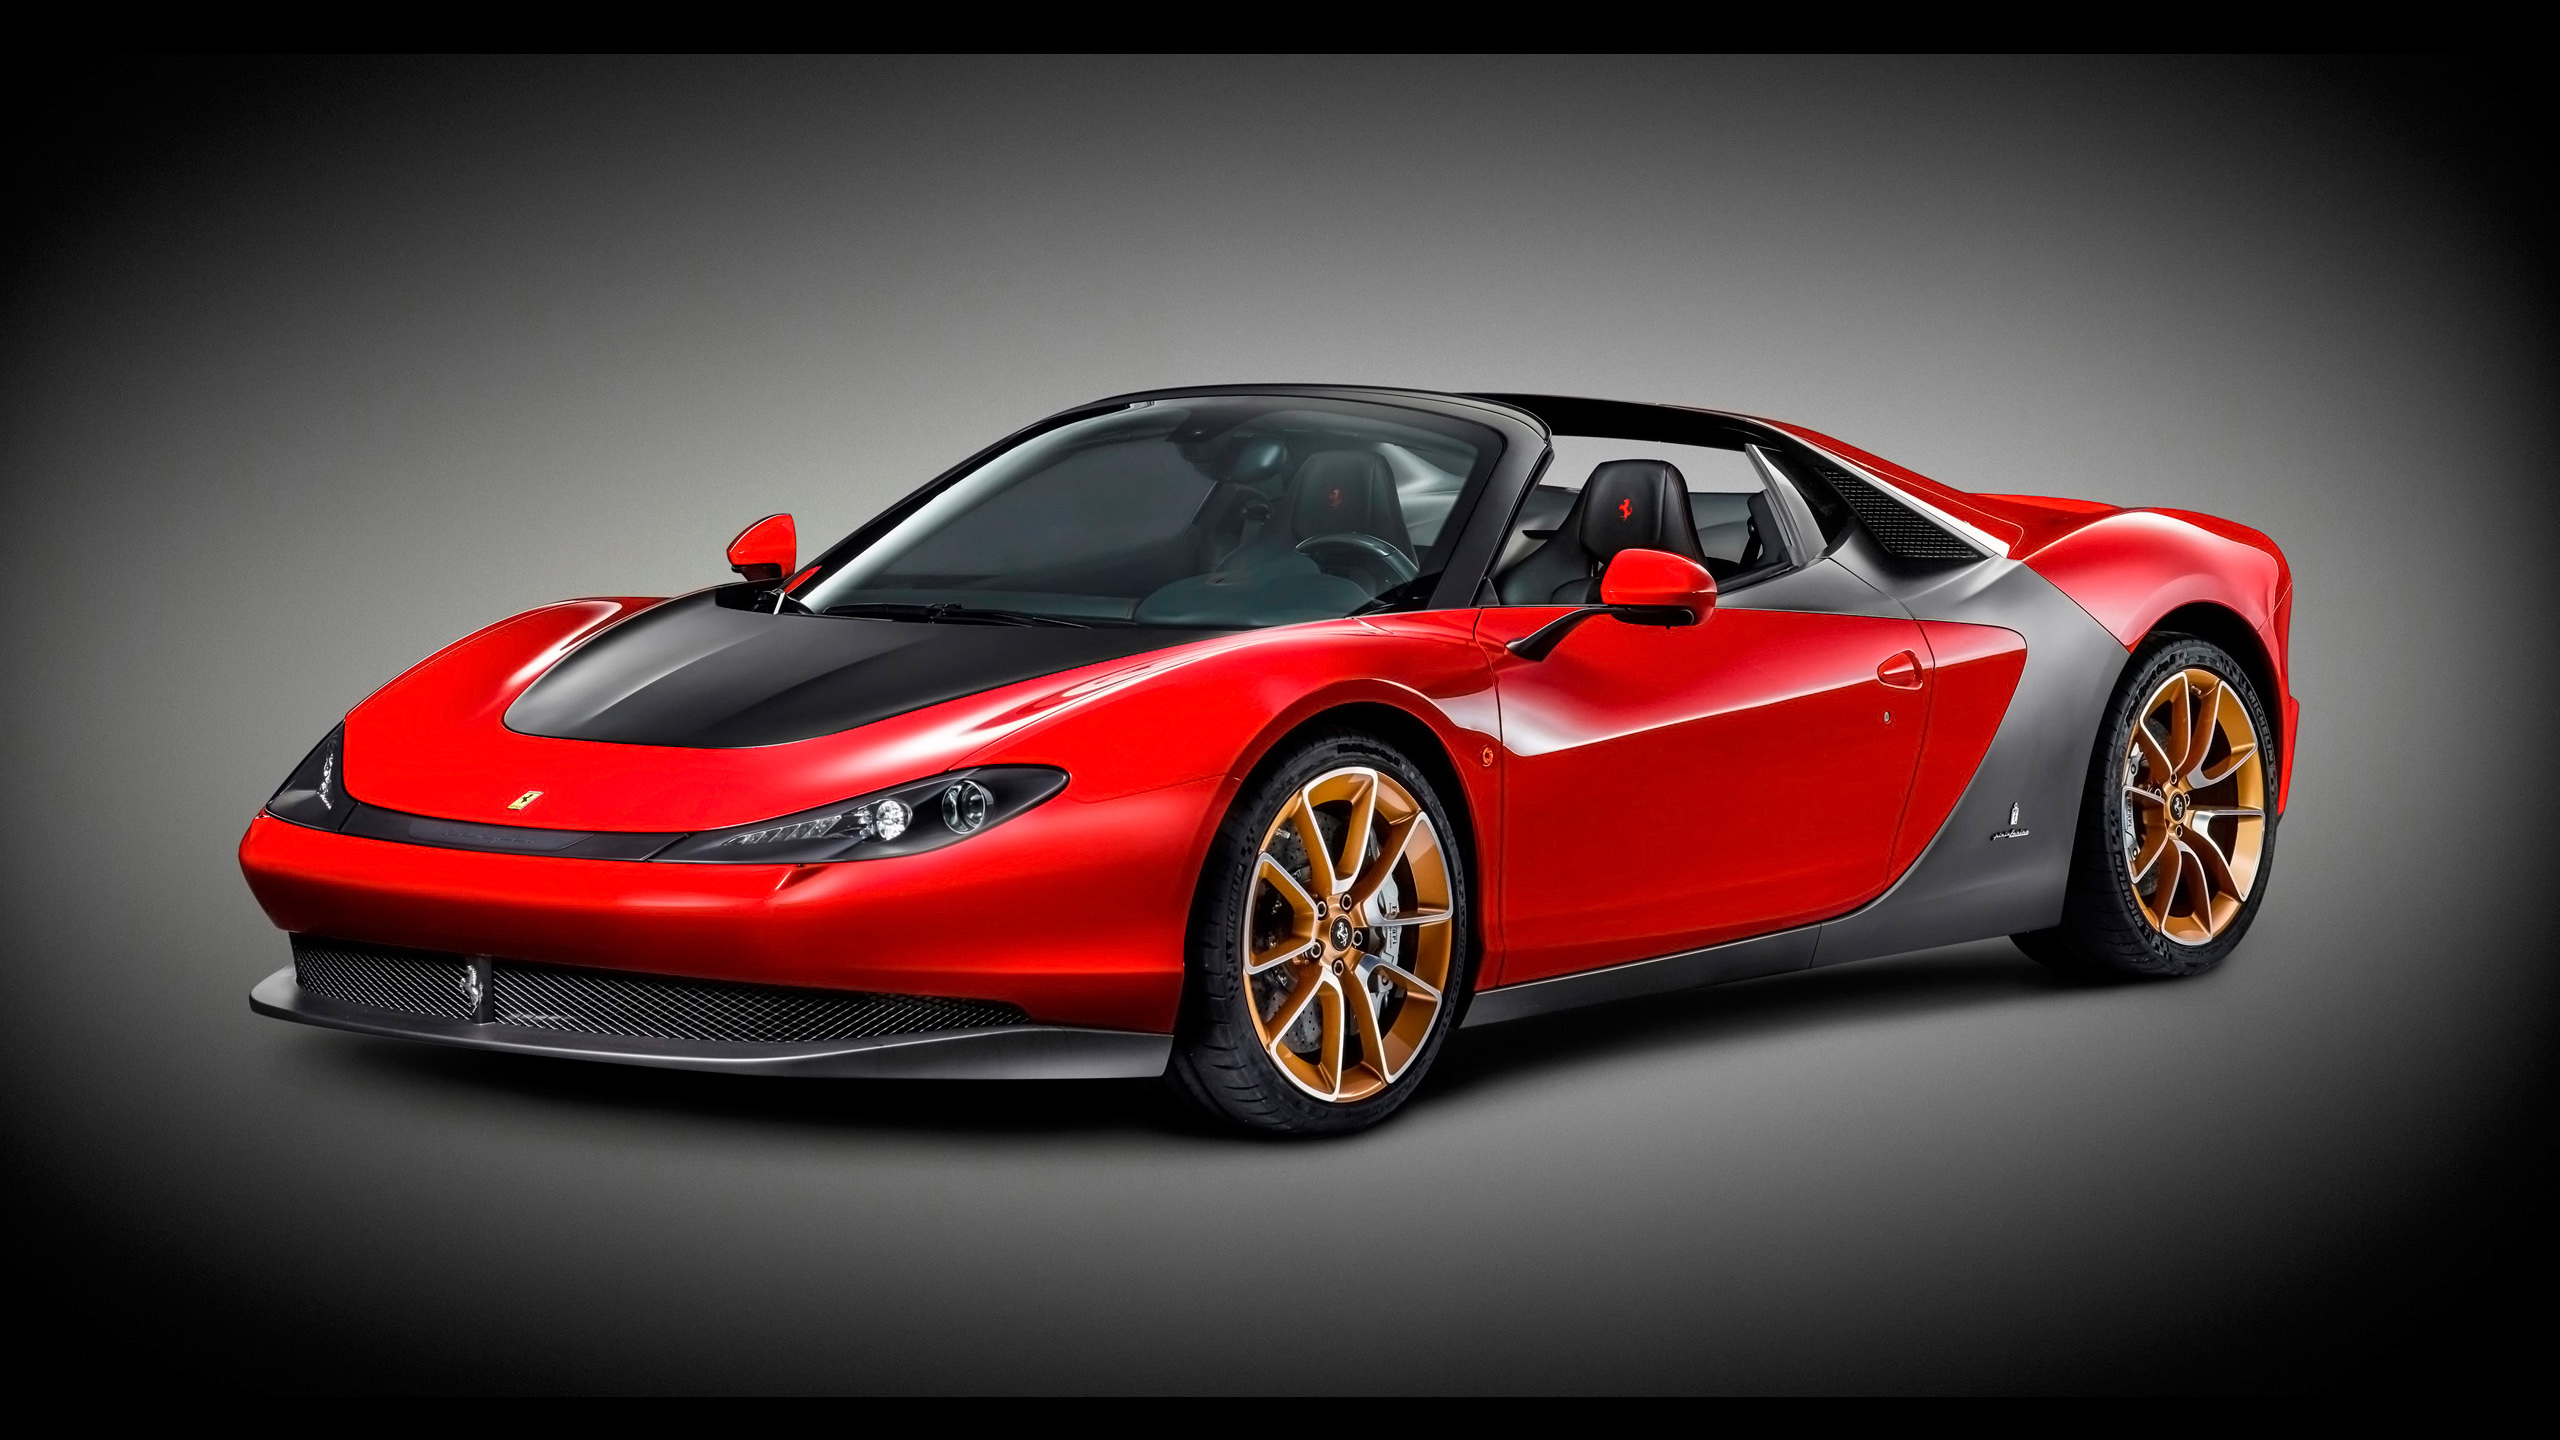 2015 Ferrari Sergio Wallpaper HD Car Wallpapers 2560x1440